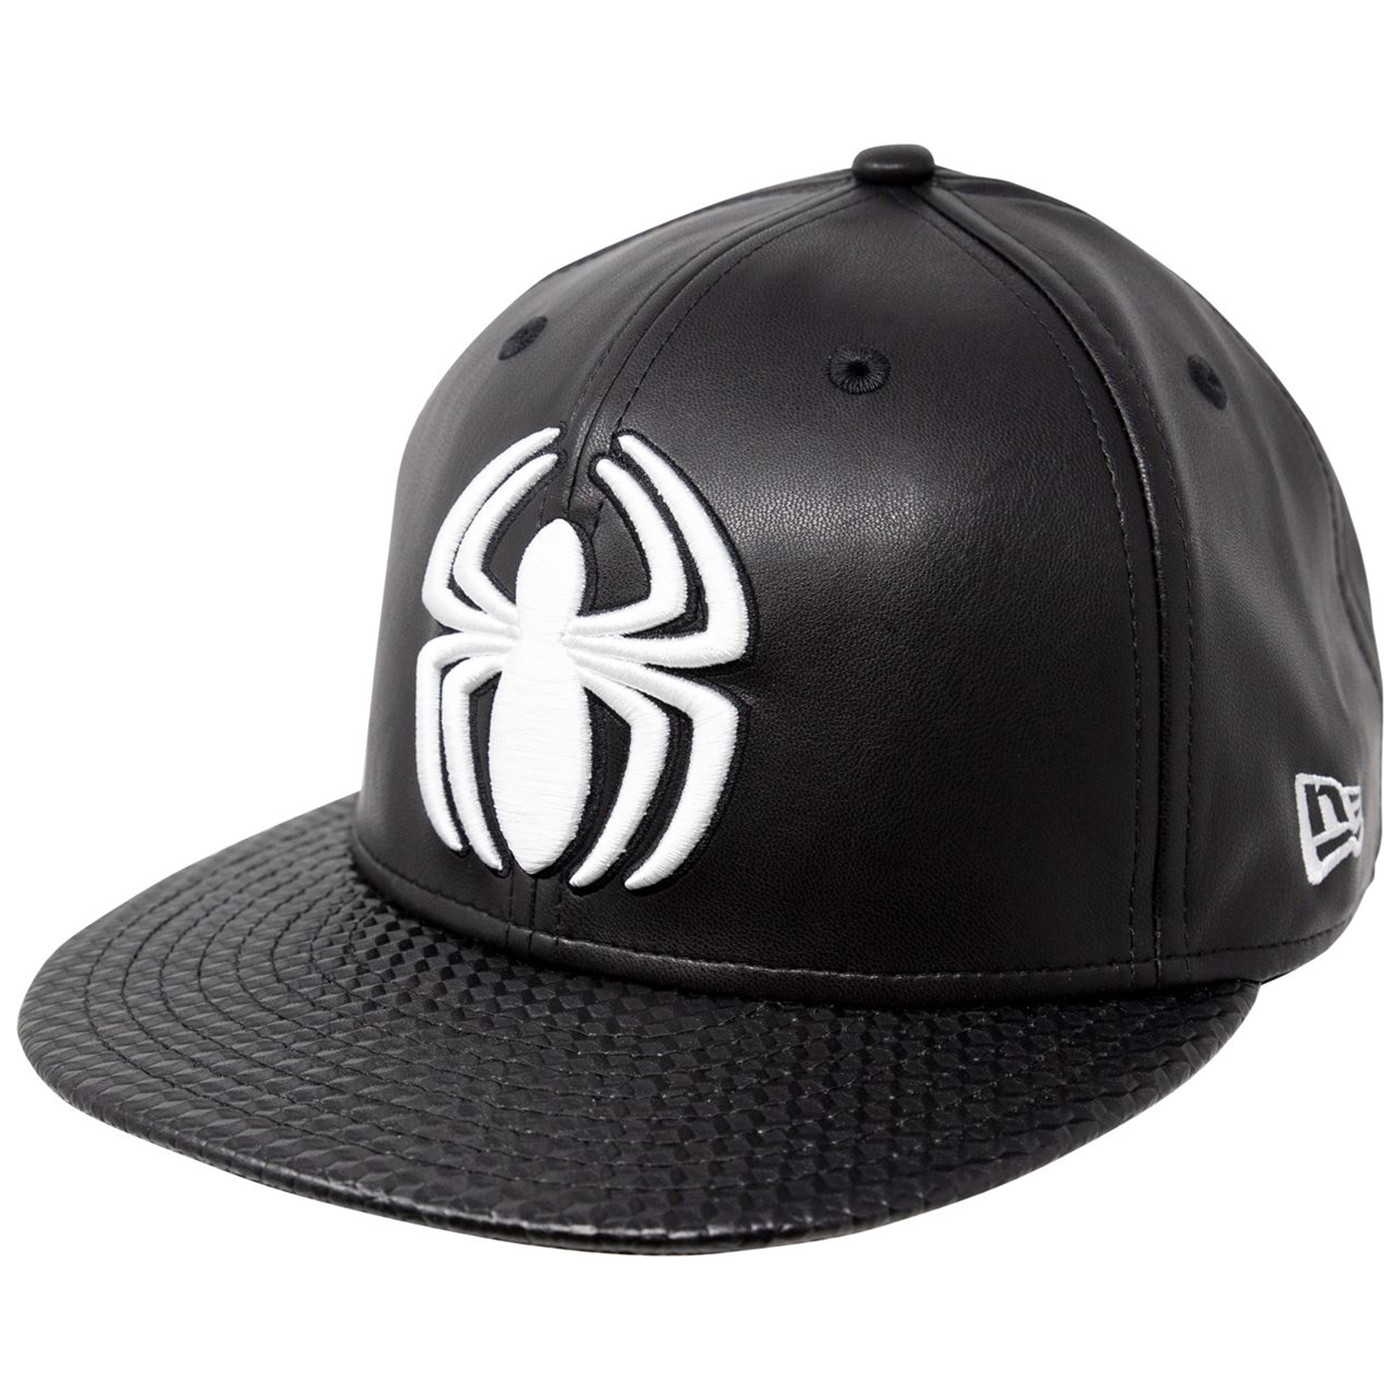 Gorra Spiderman unisex